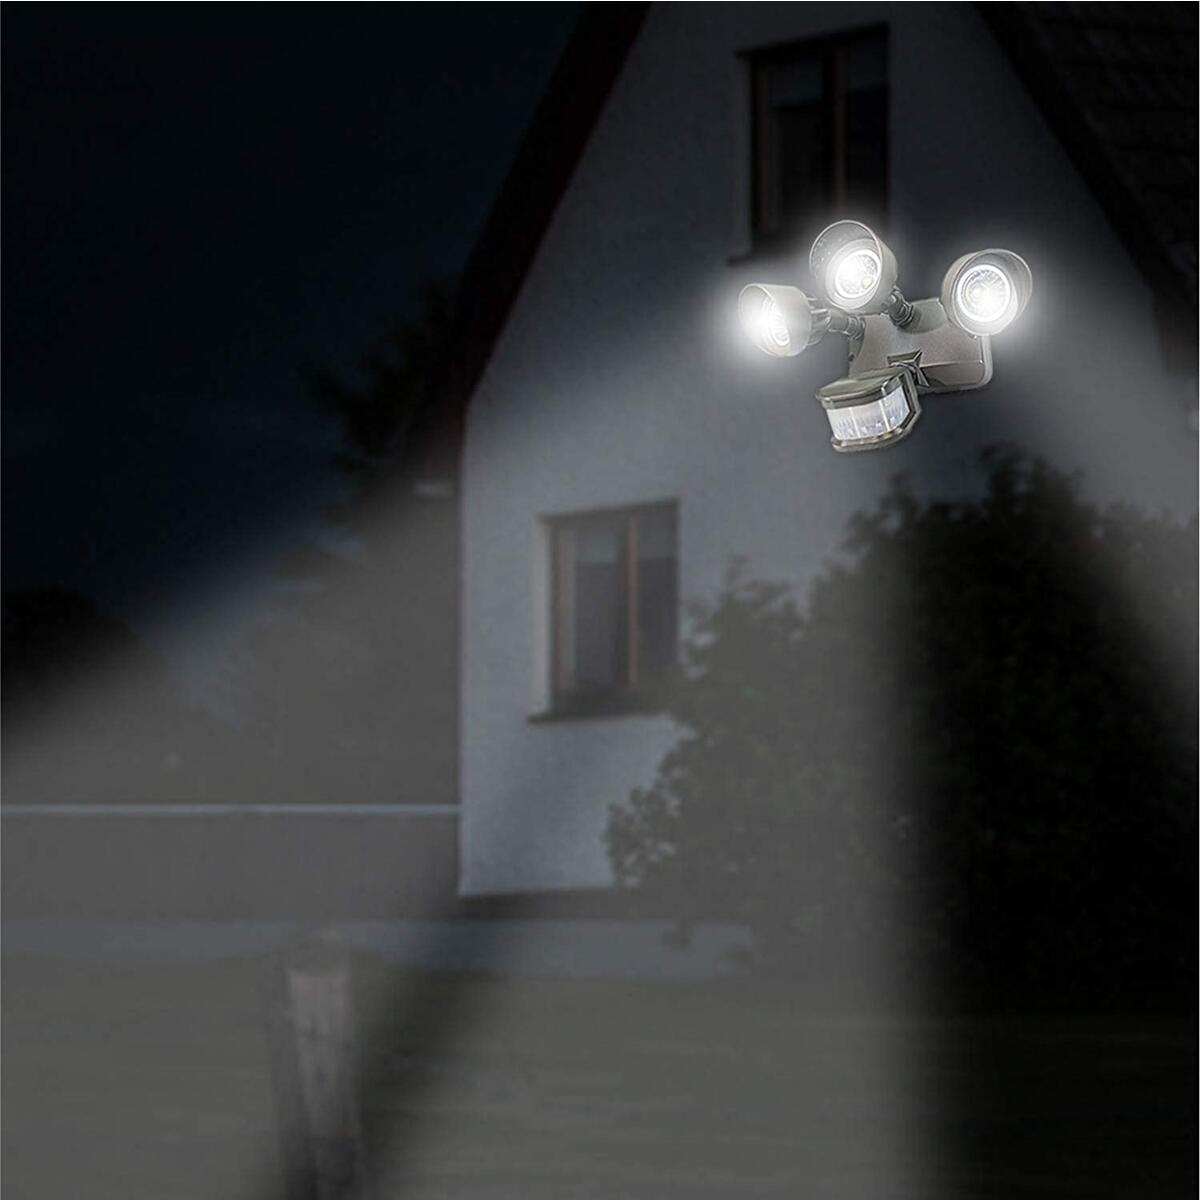 Security Light With Sensor, Adjustable Head, Waterproof and Outdoor Rated - 3 Heads, Bronze - 5000K - COUPON CAN BE USED FOR ALL COLORS